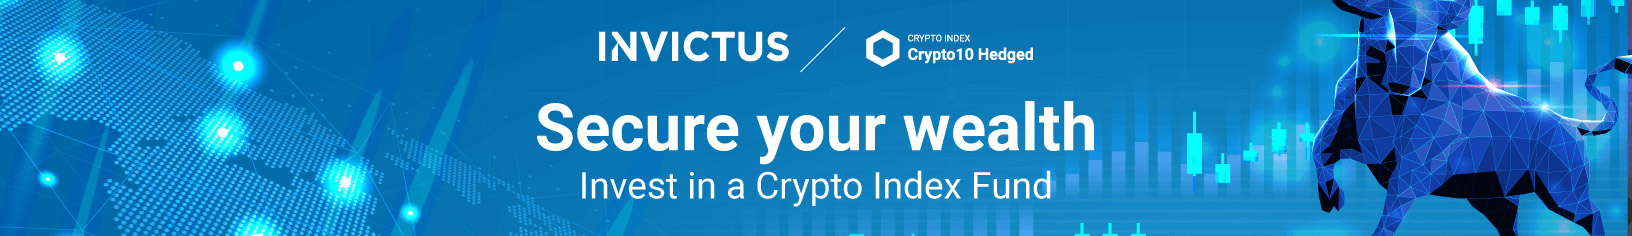 Secure your wealth: Invest in a Crypto Index Fund